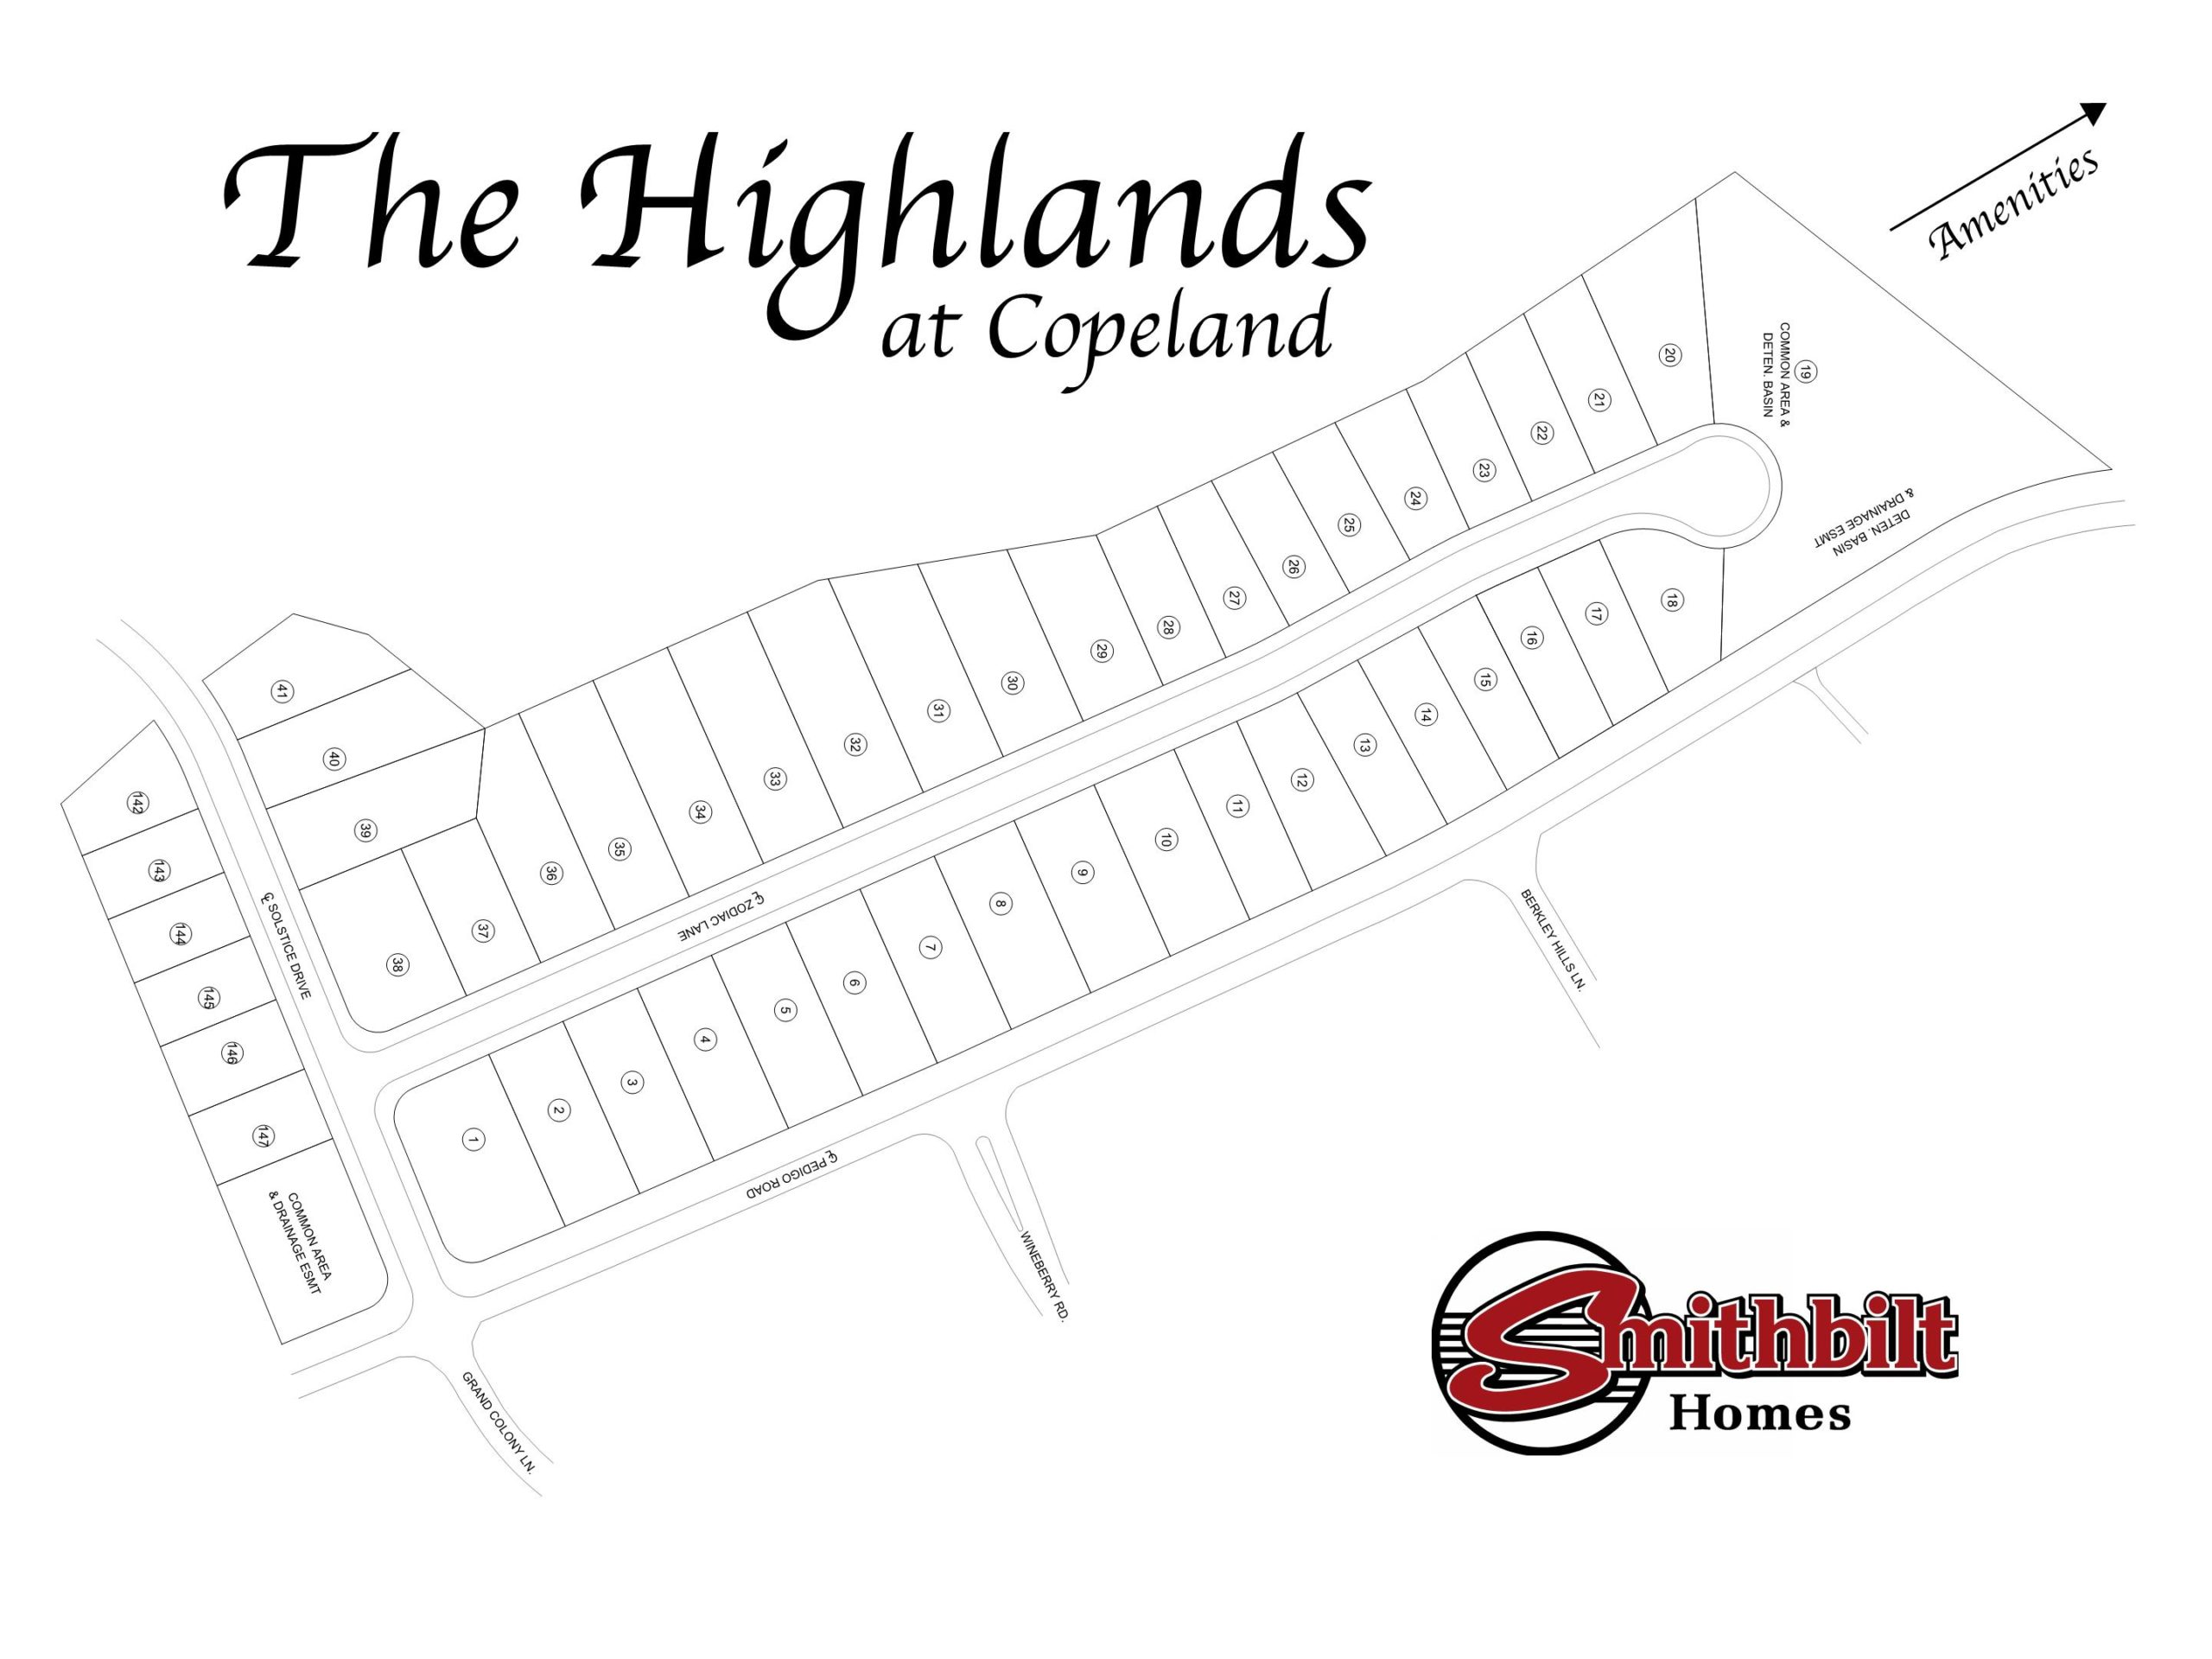 The Highlands at Copeland